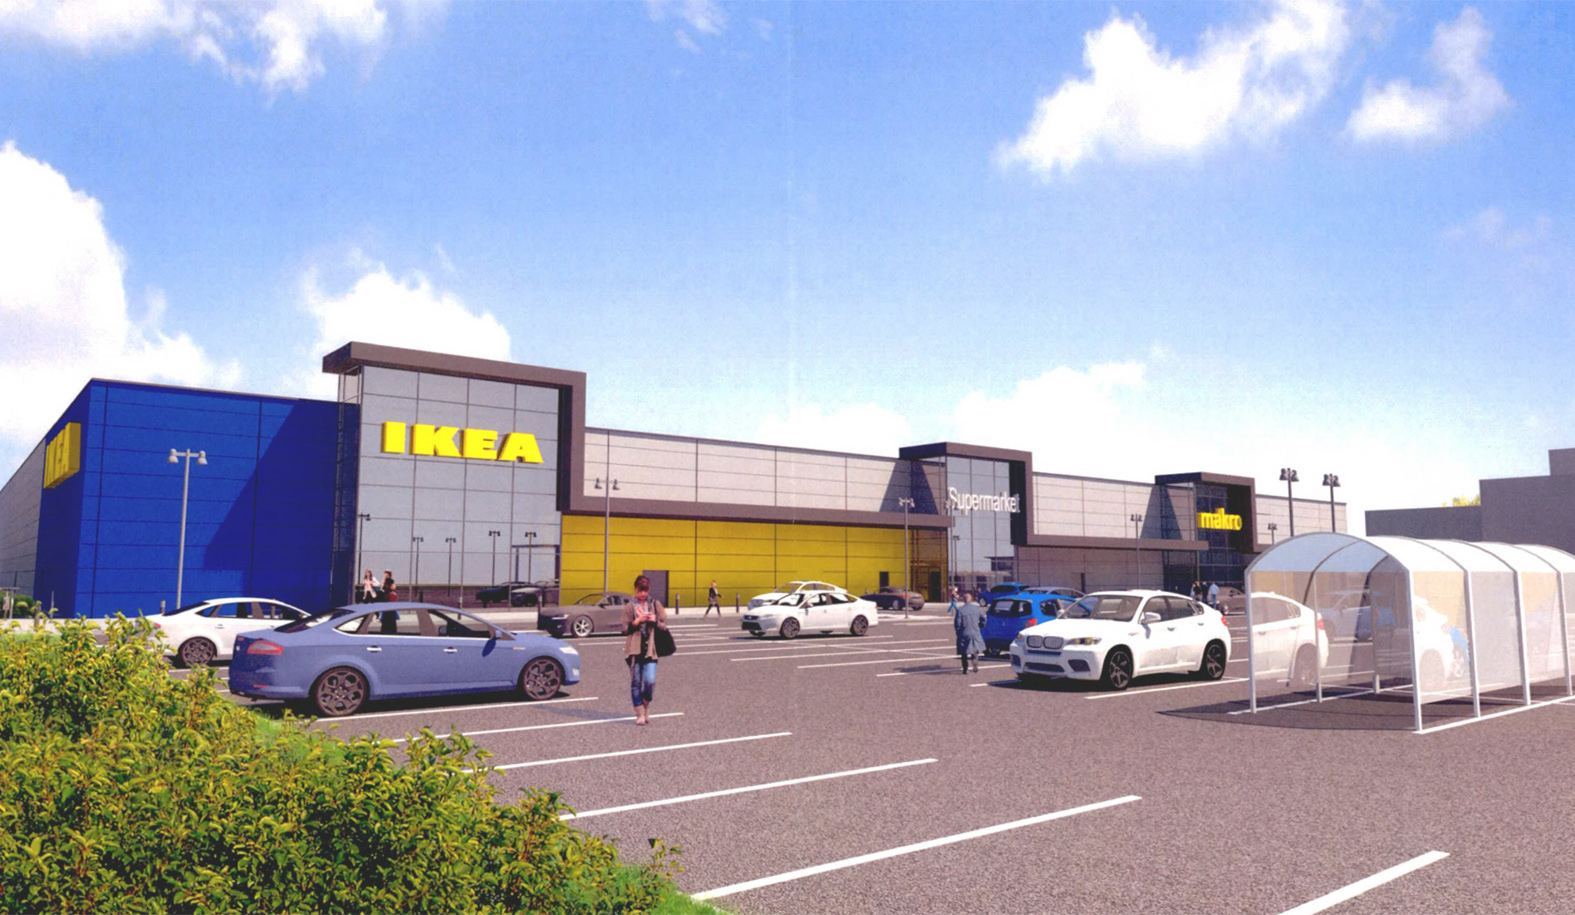 PLANS: An artist's impression of how IKEA will look at the Nigg site.